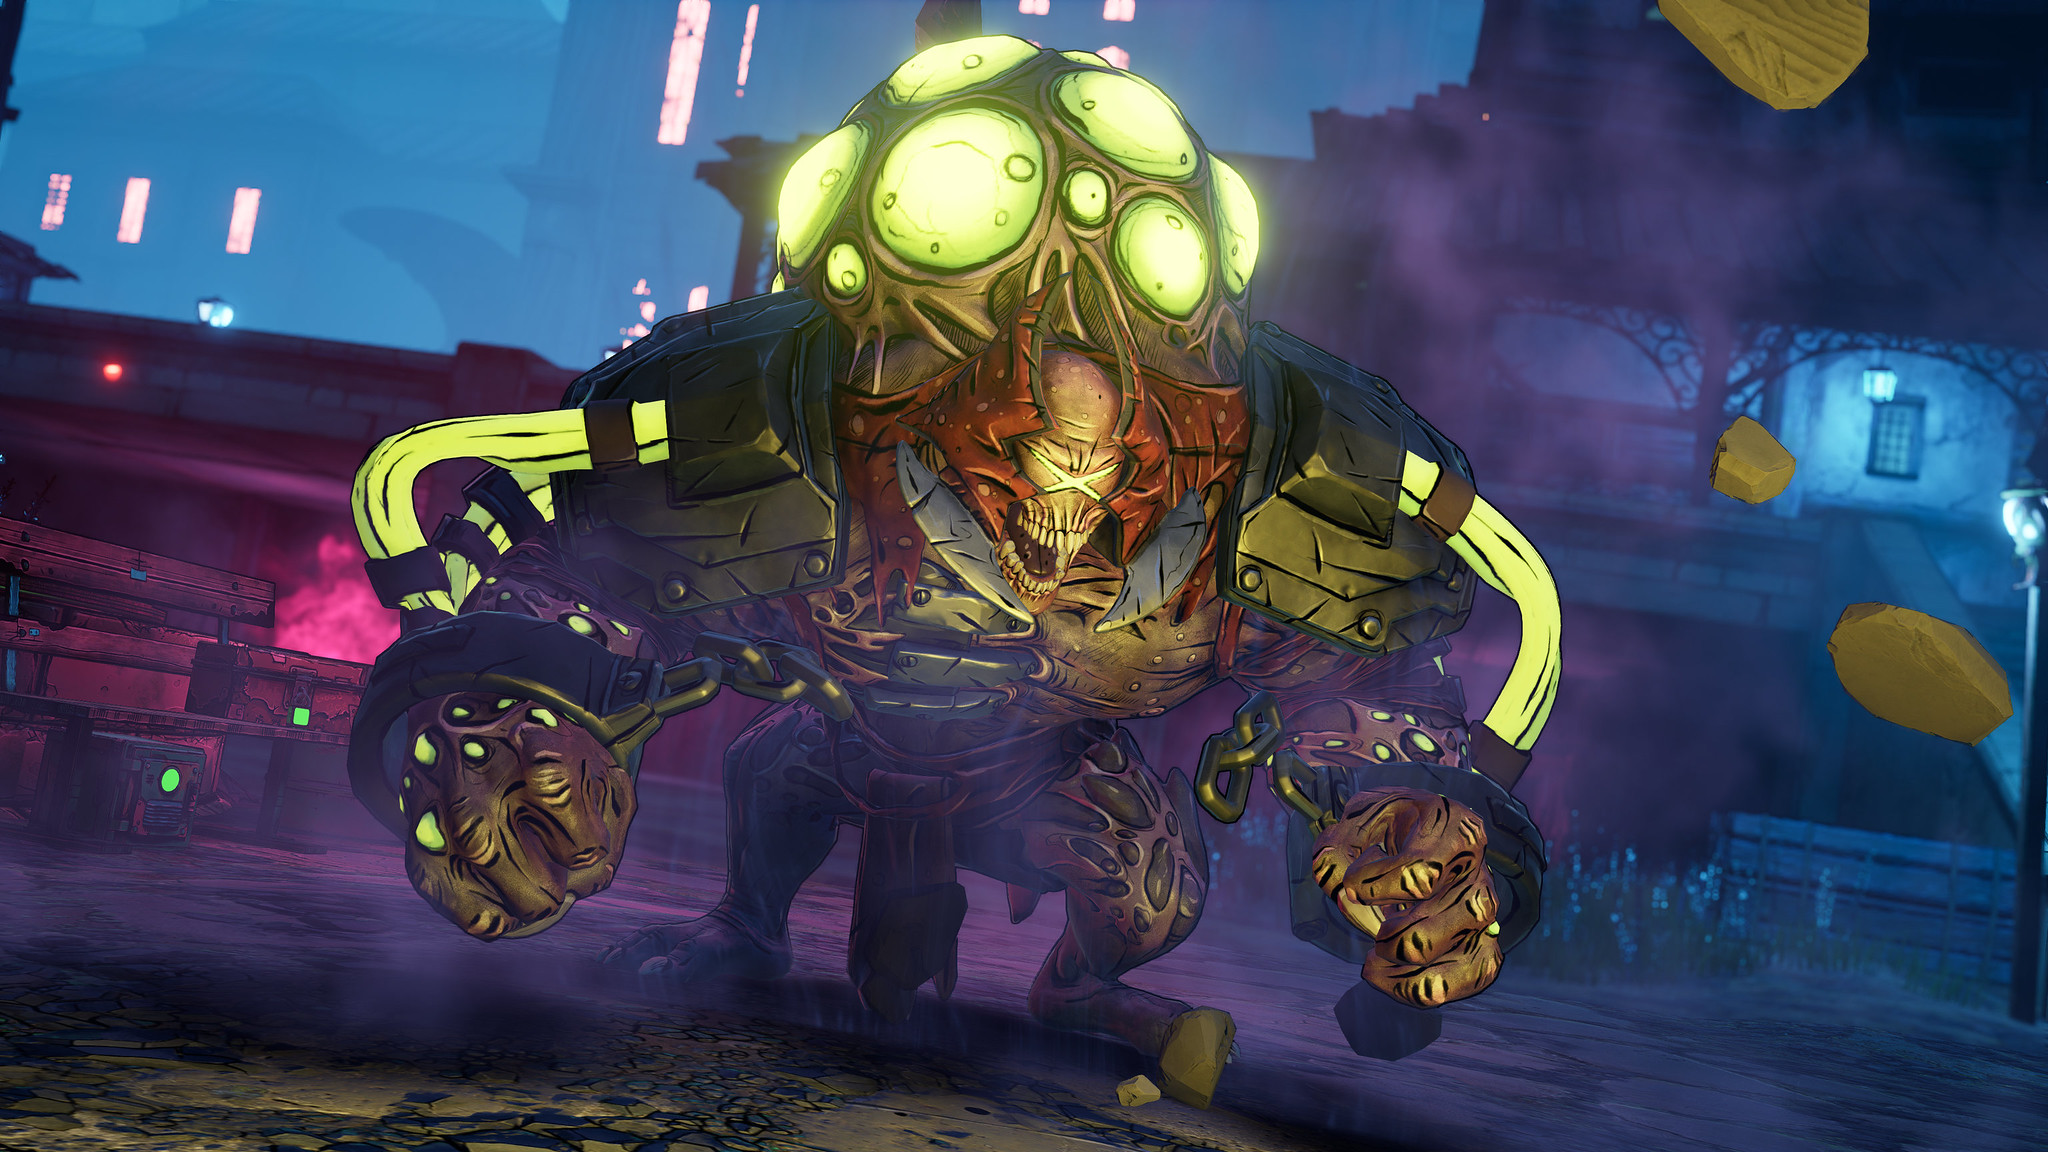 Borderlands 3 for PC coming to Steam on March 13